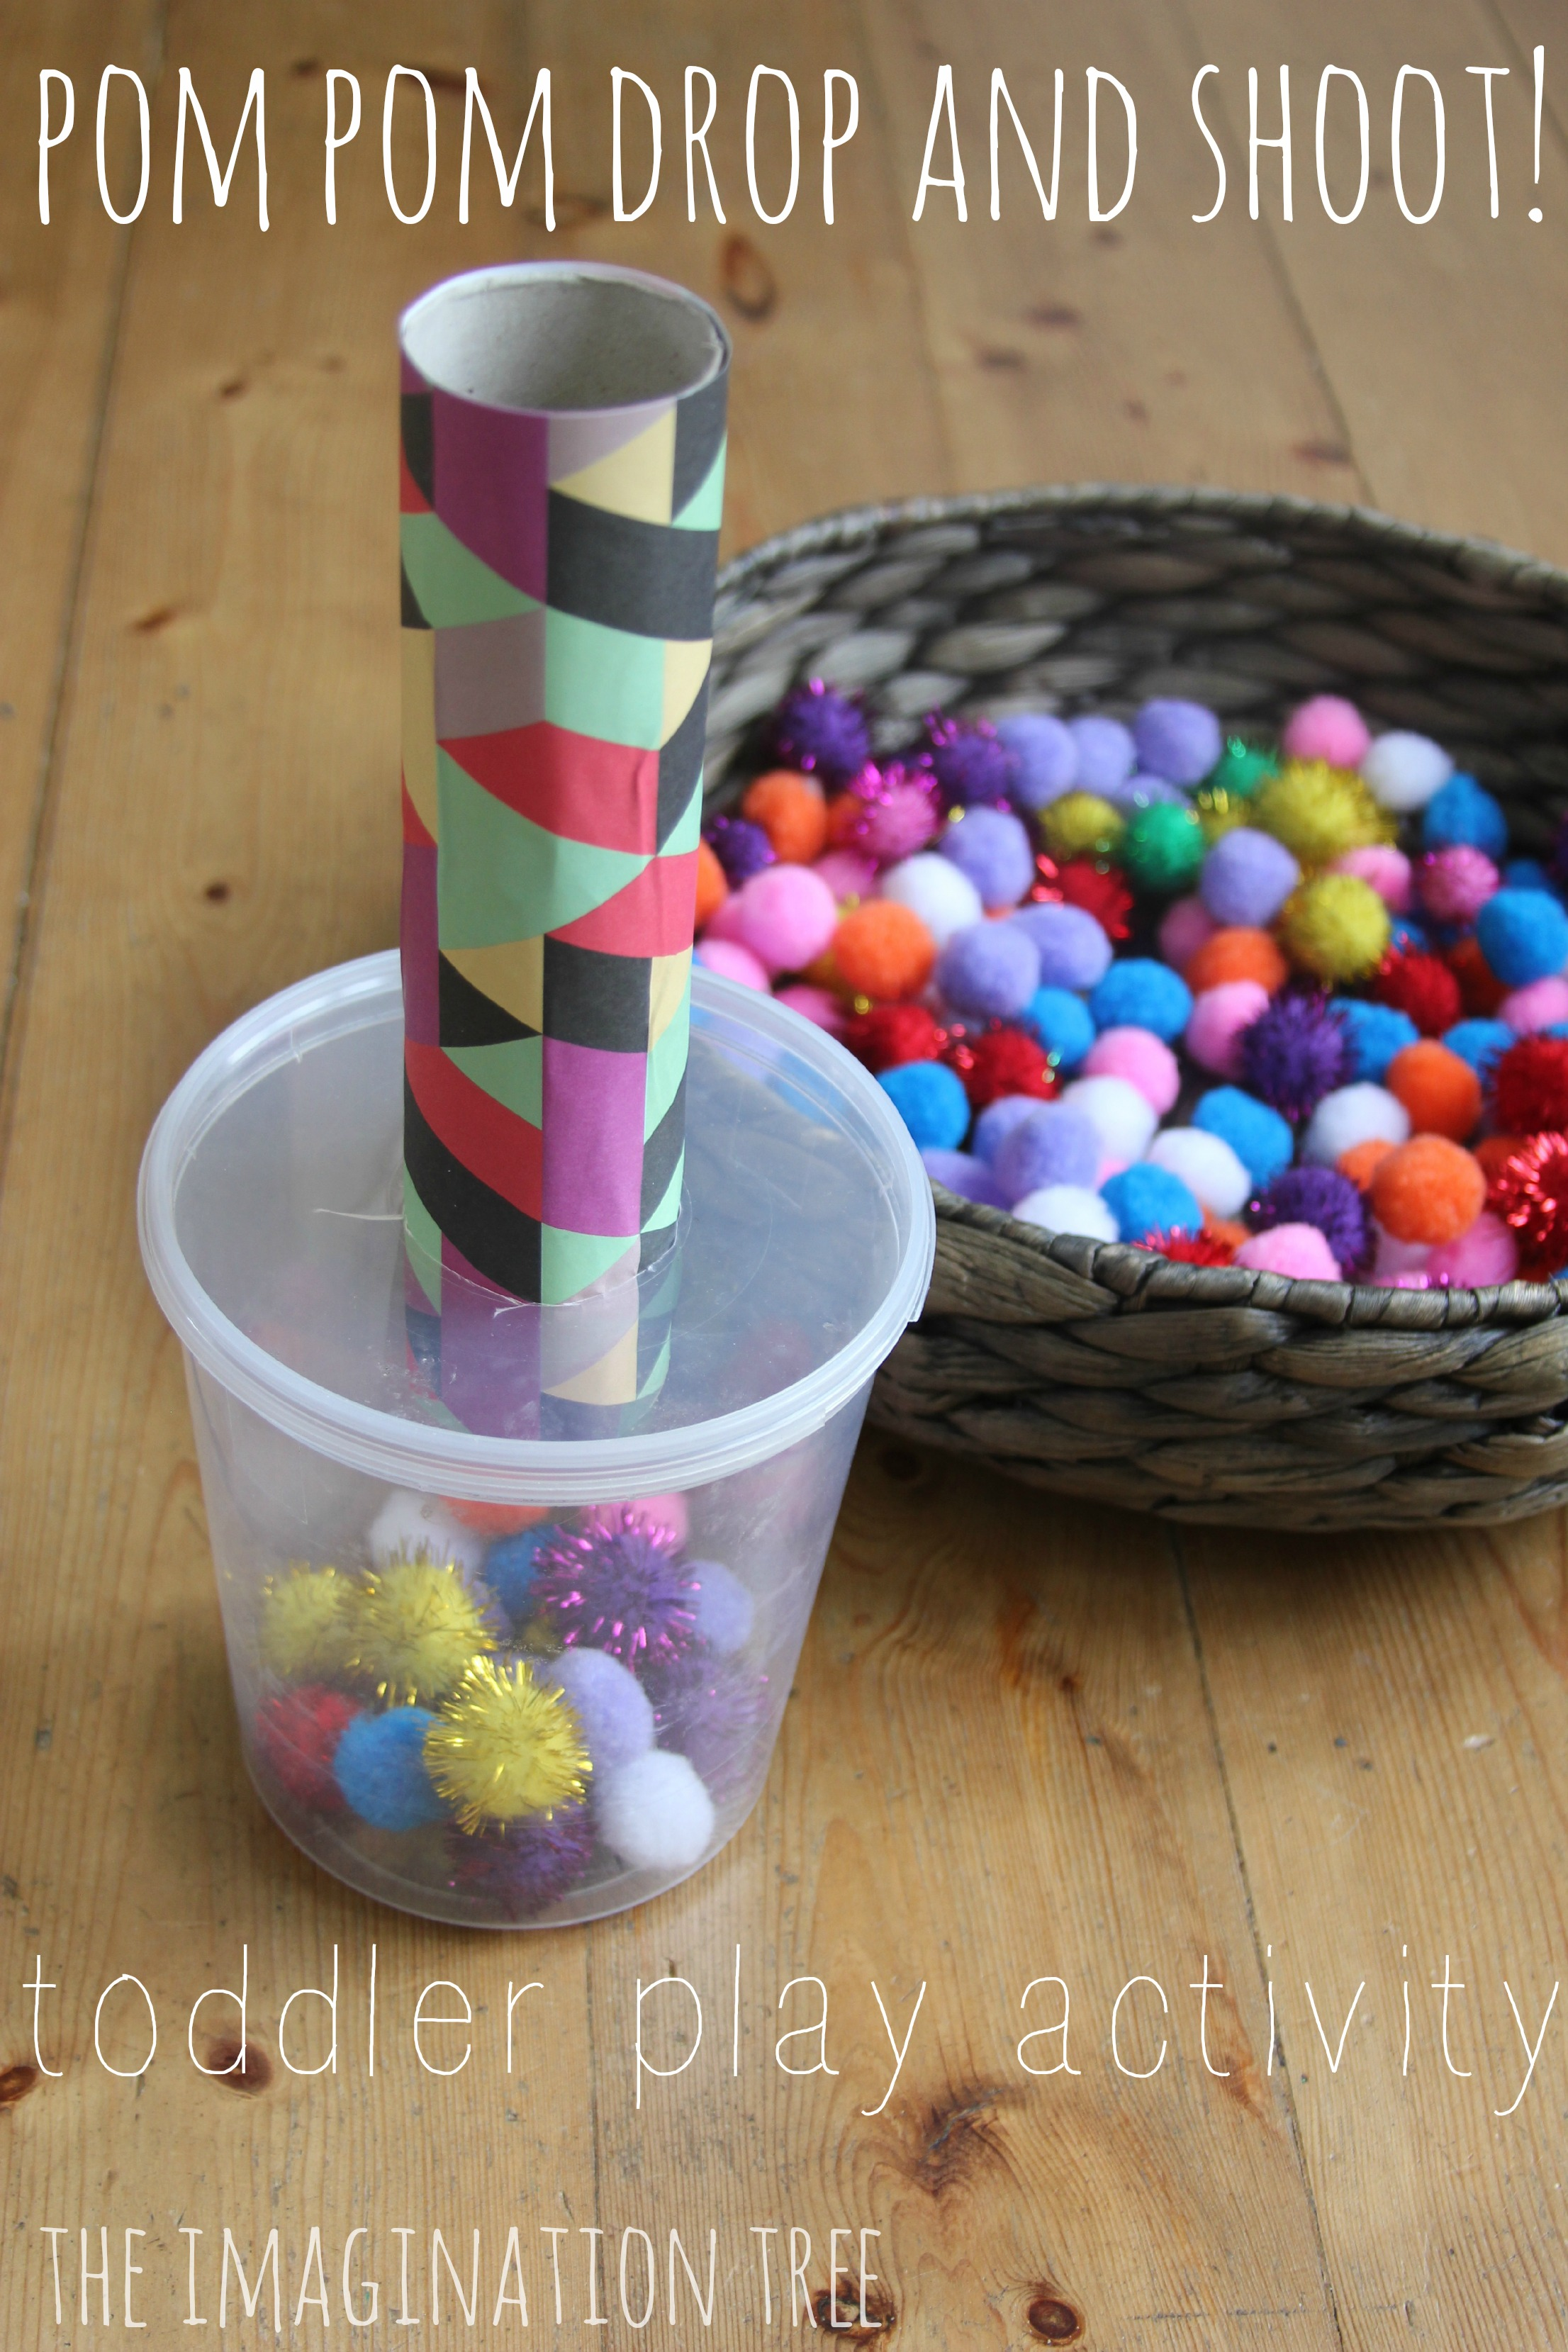 Toys For Infants >> Pom Pom Drop and Shoot: Toddler Play - The Imagination Tree